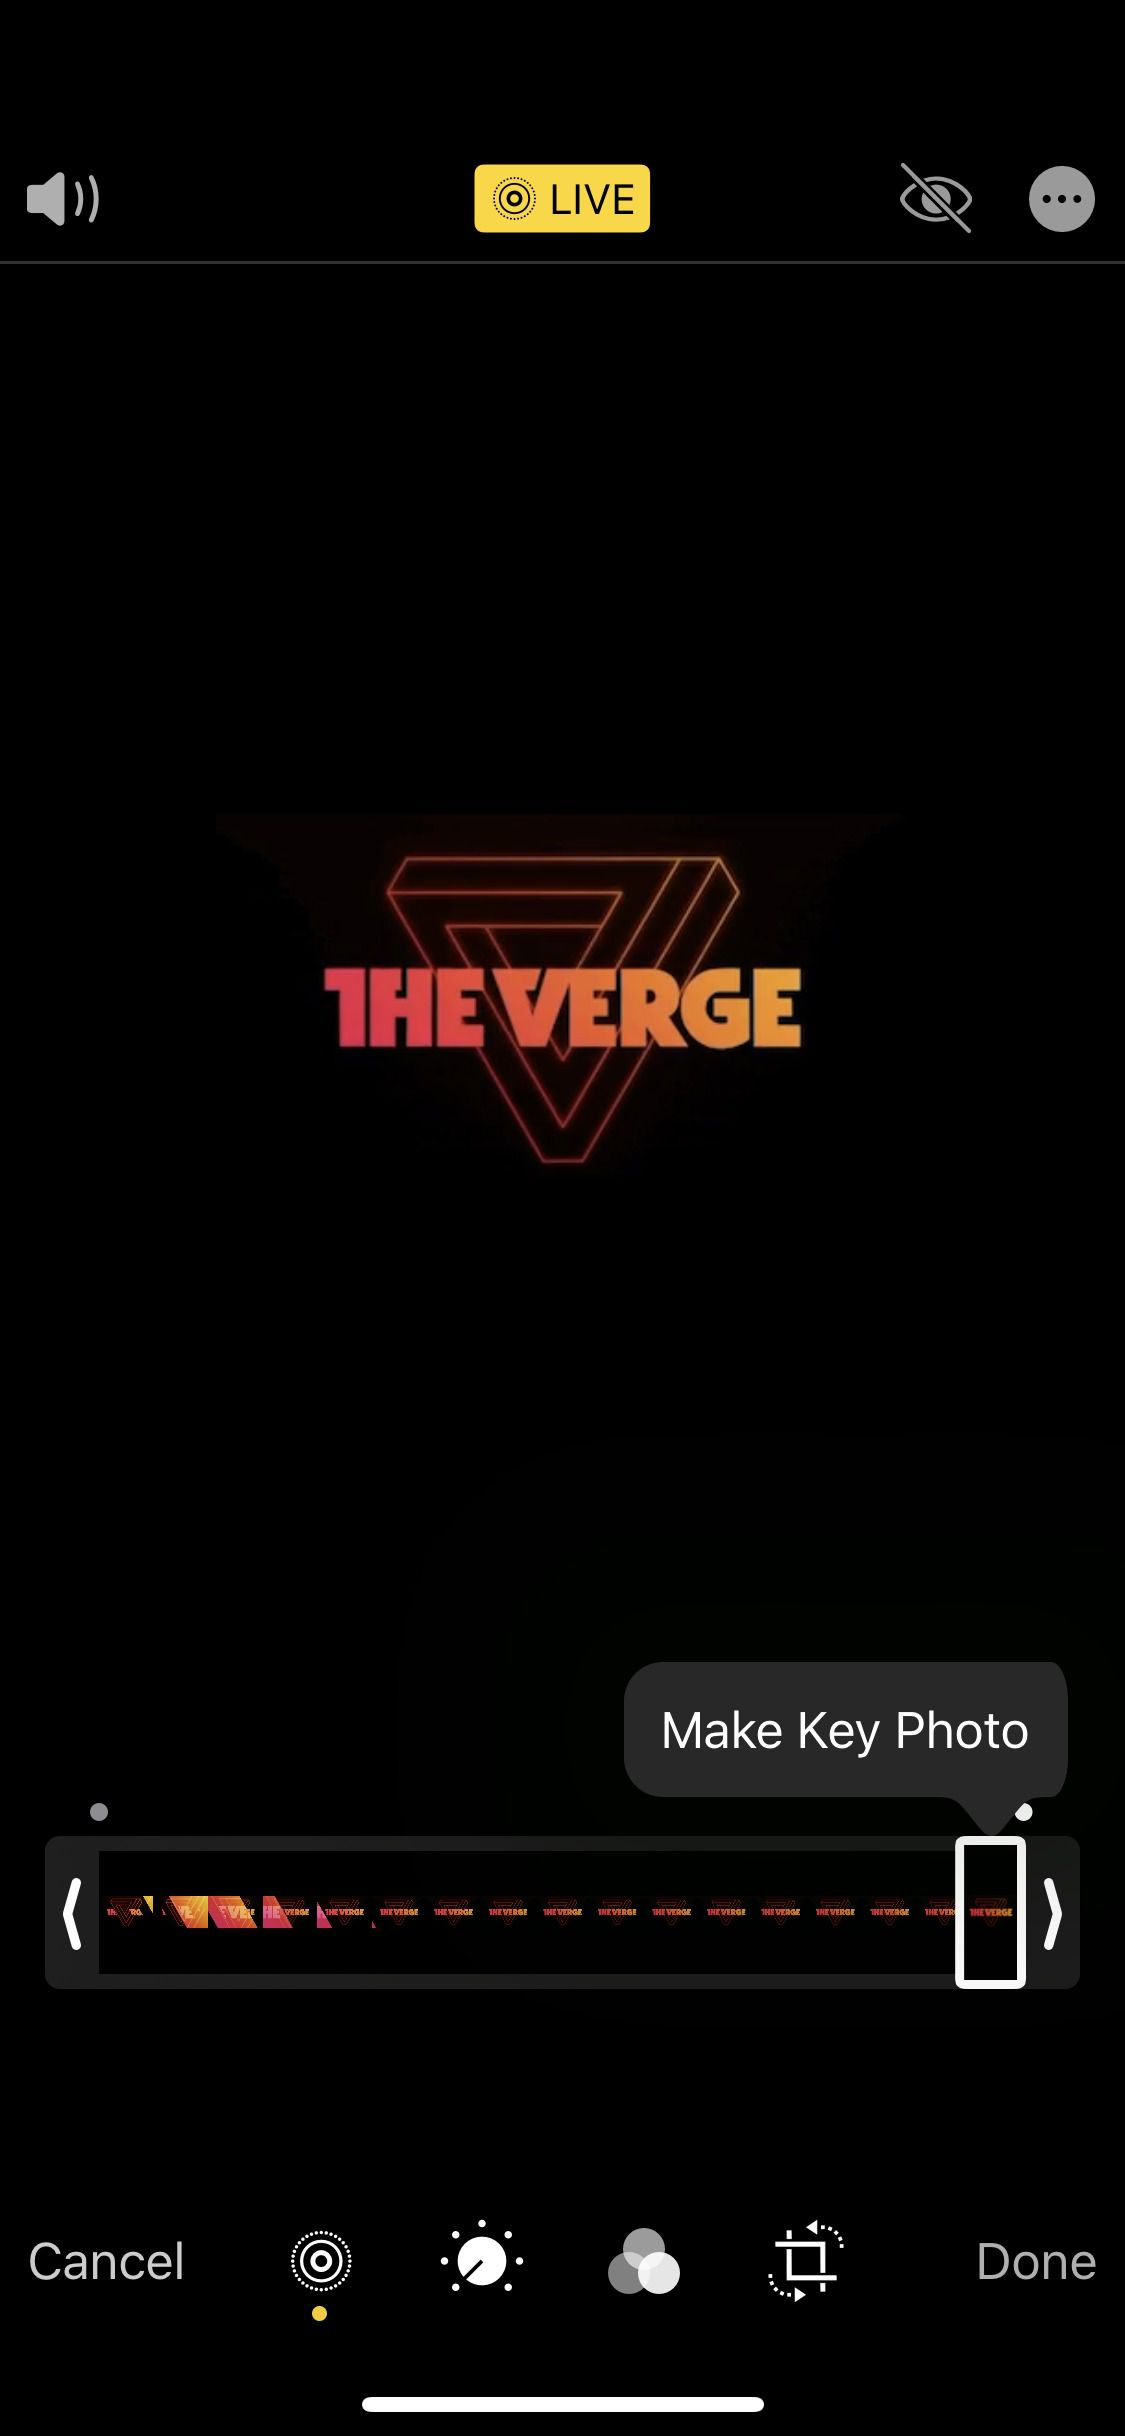 How To Turn Gifs Into A Wallpaper For Your Apple Watch The Verge